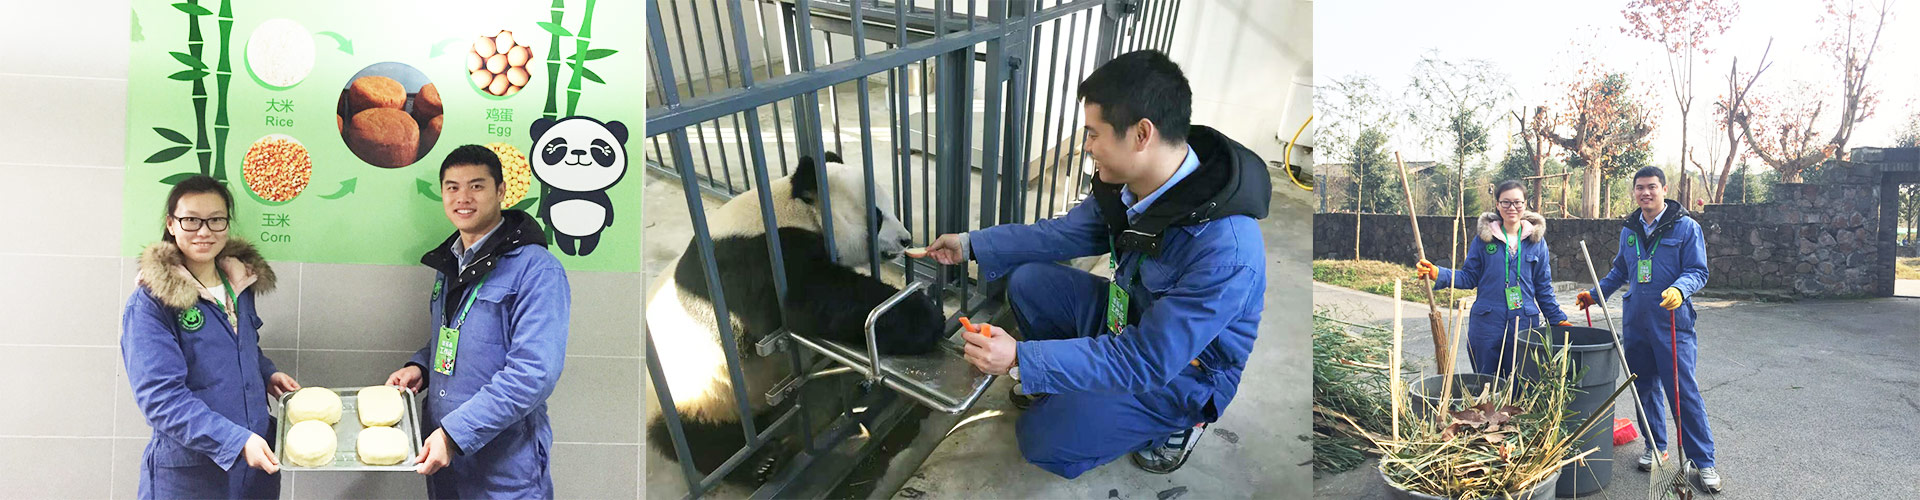 Lifetime Experience with Pandas at Dujiangyan Panda Base